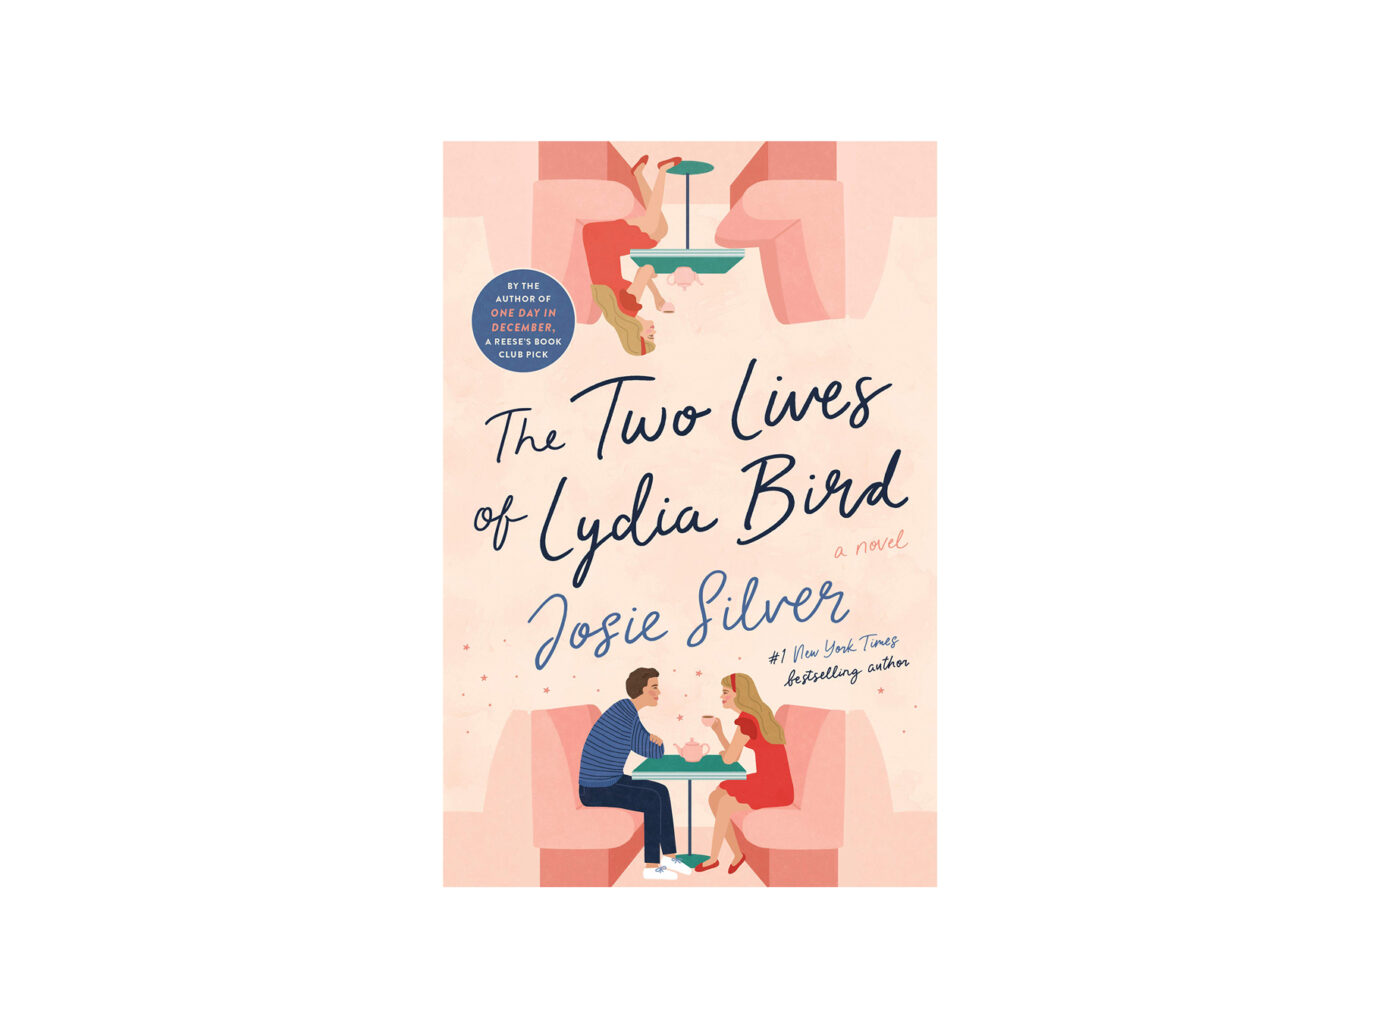 The Two Lives of Lydia Bird: A Novel